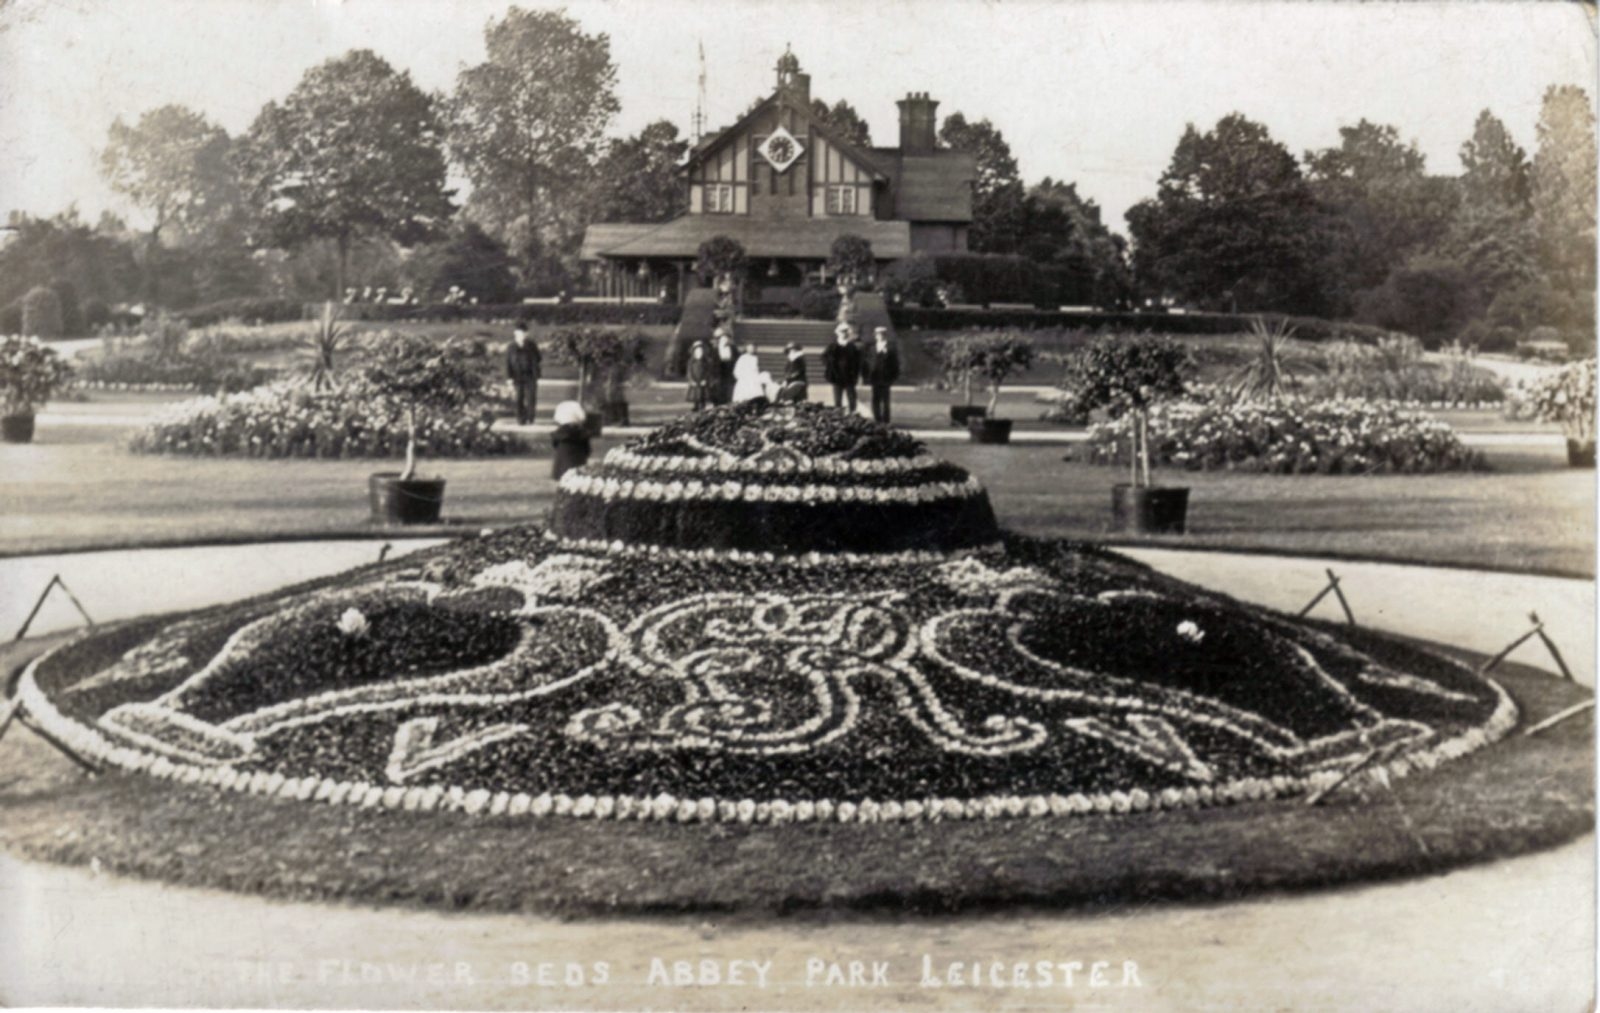 Abbey Park, Leicester. 1901-1920: Pavilion and carpet bedding. People in background (File:1026)